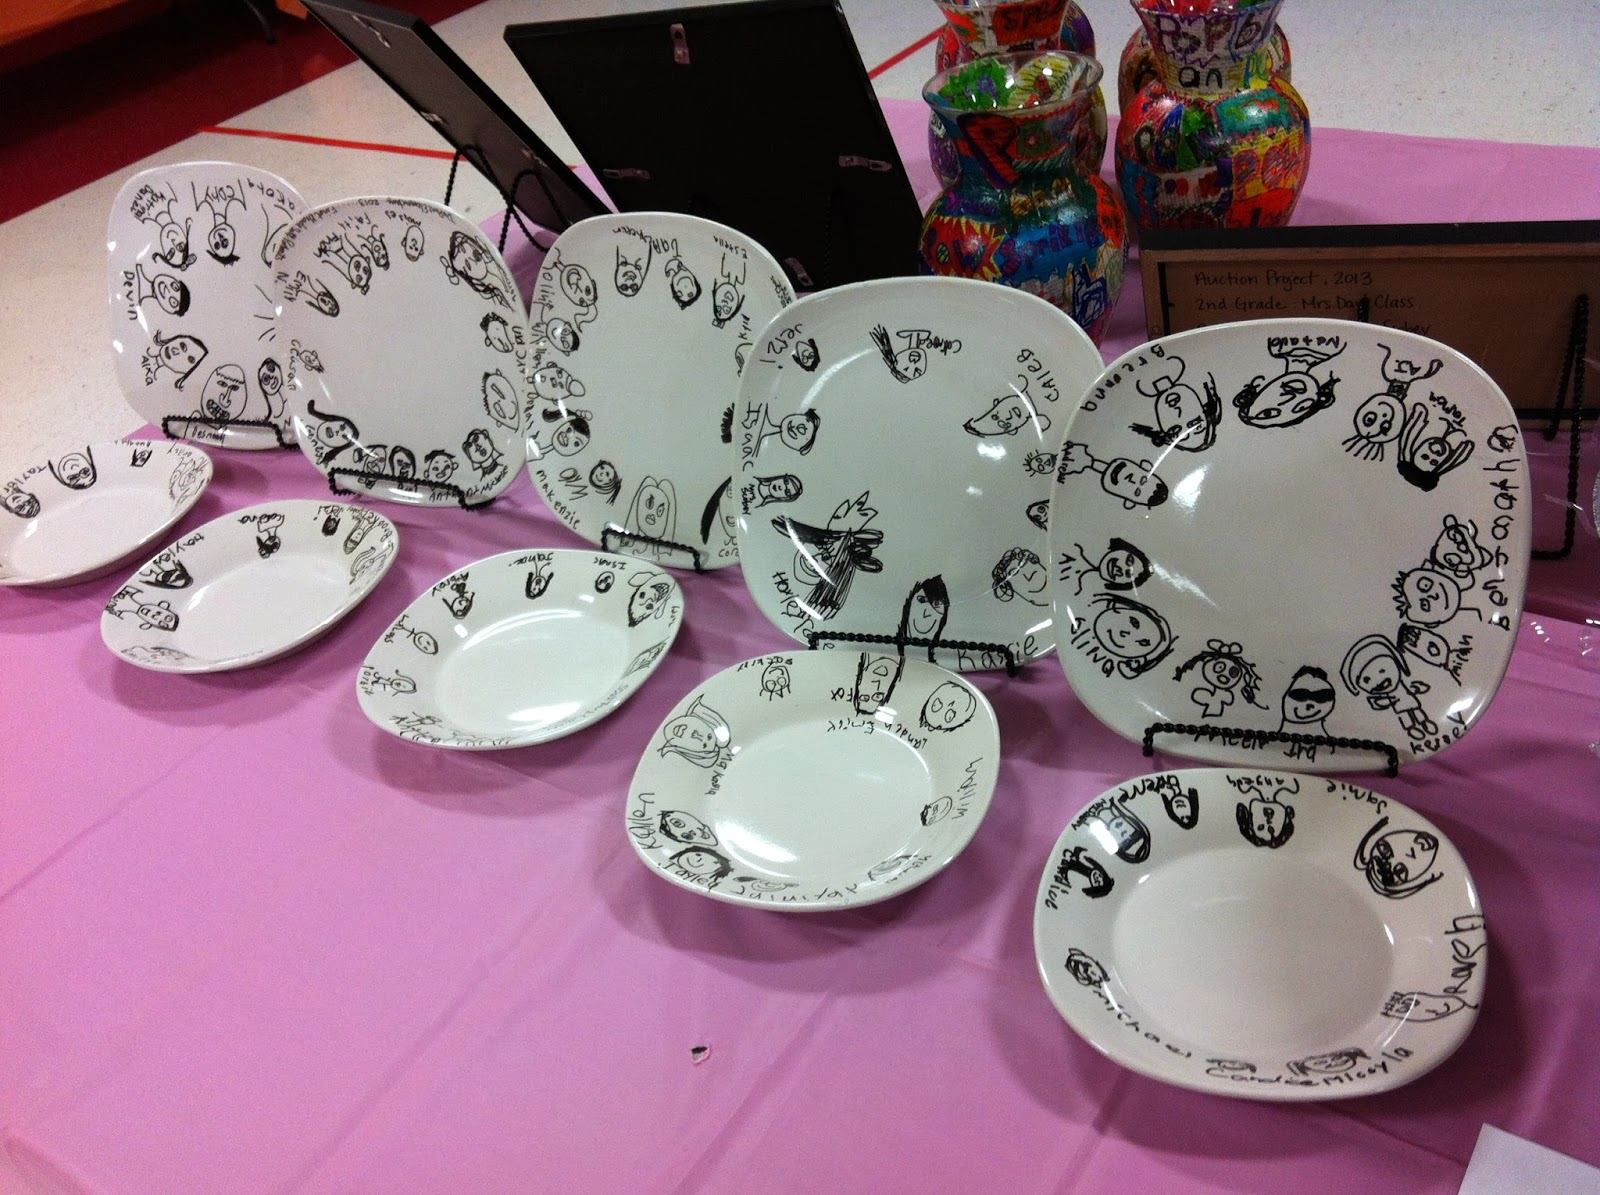 Chumleyscobey Art Room Faces On Plates 1st Grade Auction